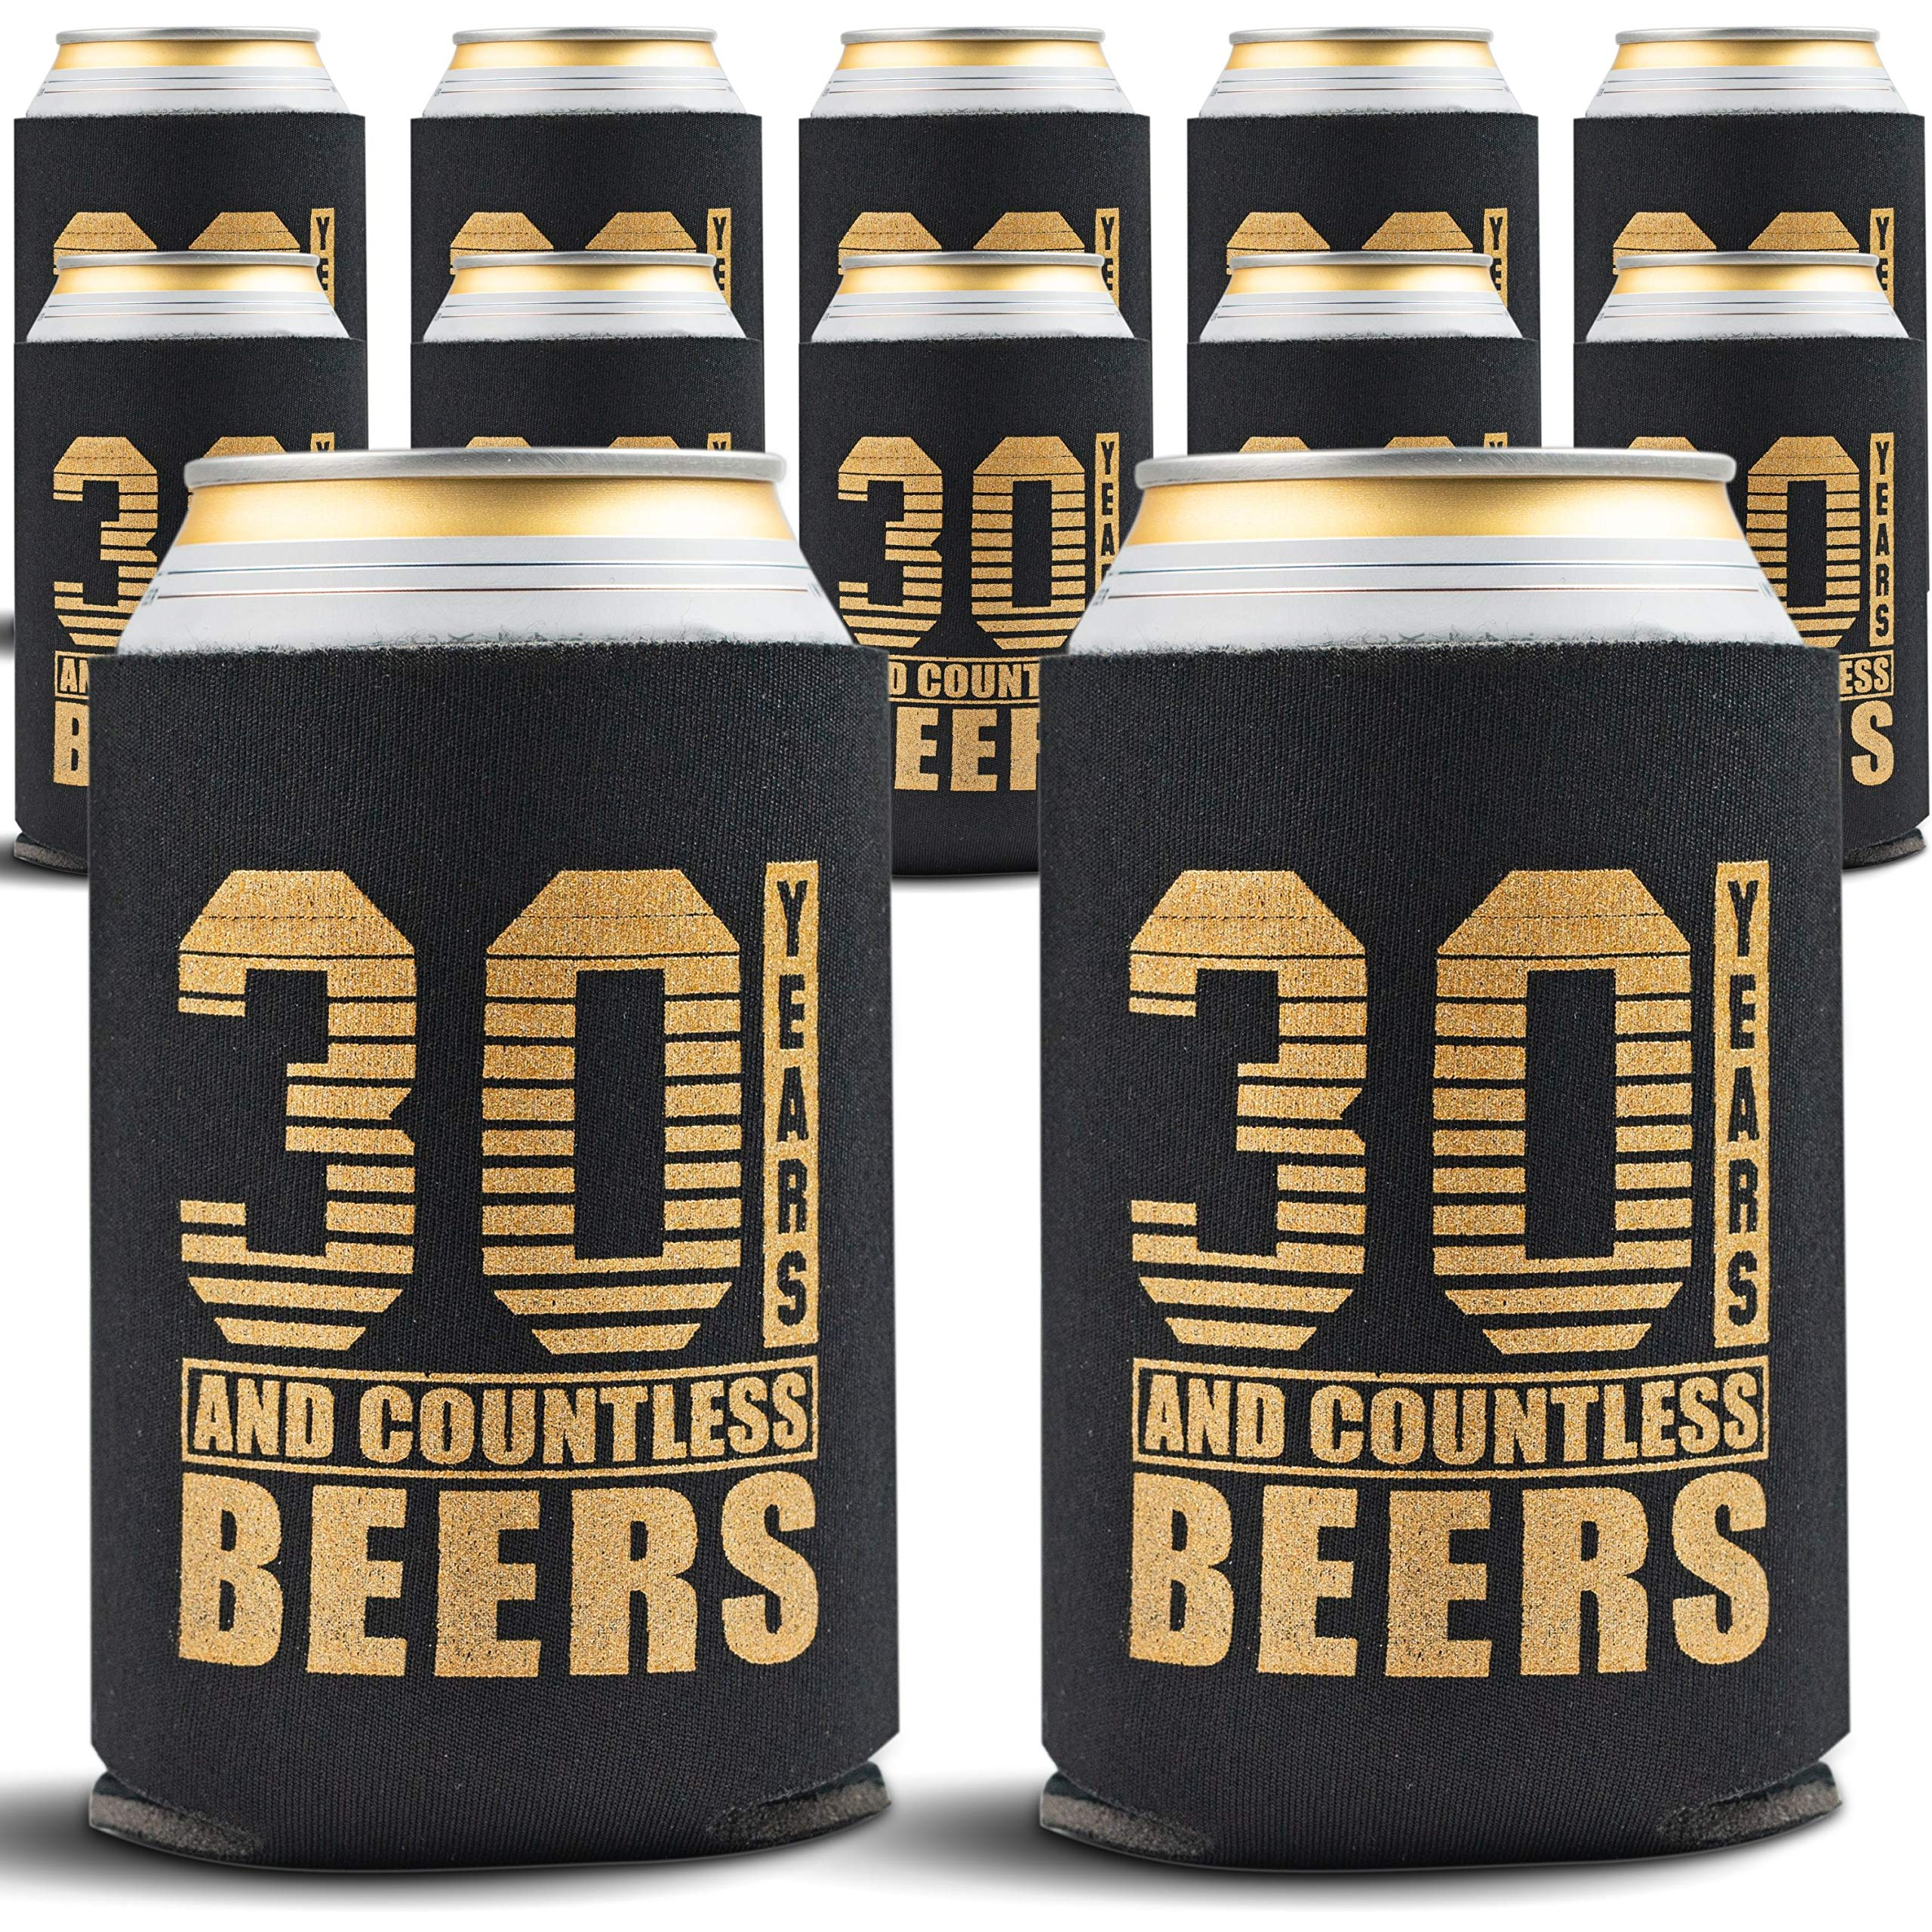 30th Birthday Decorations for Him - 12-Pack Can Coolers - Dirty 30 Birthday Party Supplies - 30th Birthday Gifts for Men or for Her, 12 Insulated Sleeves for Thirty Birthday, Black with Gold Lettering by Gold Coastal